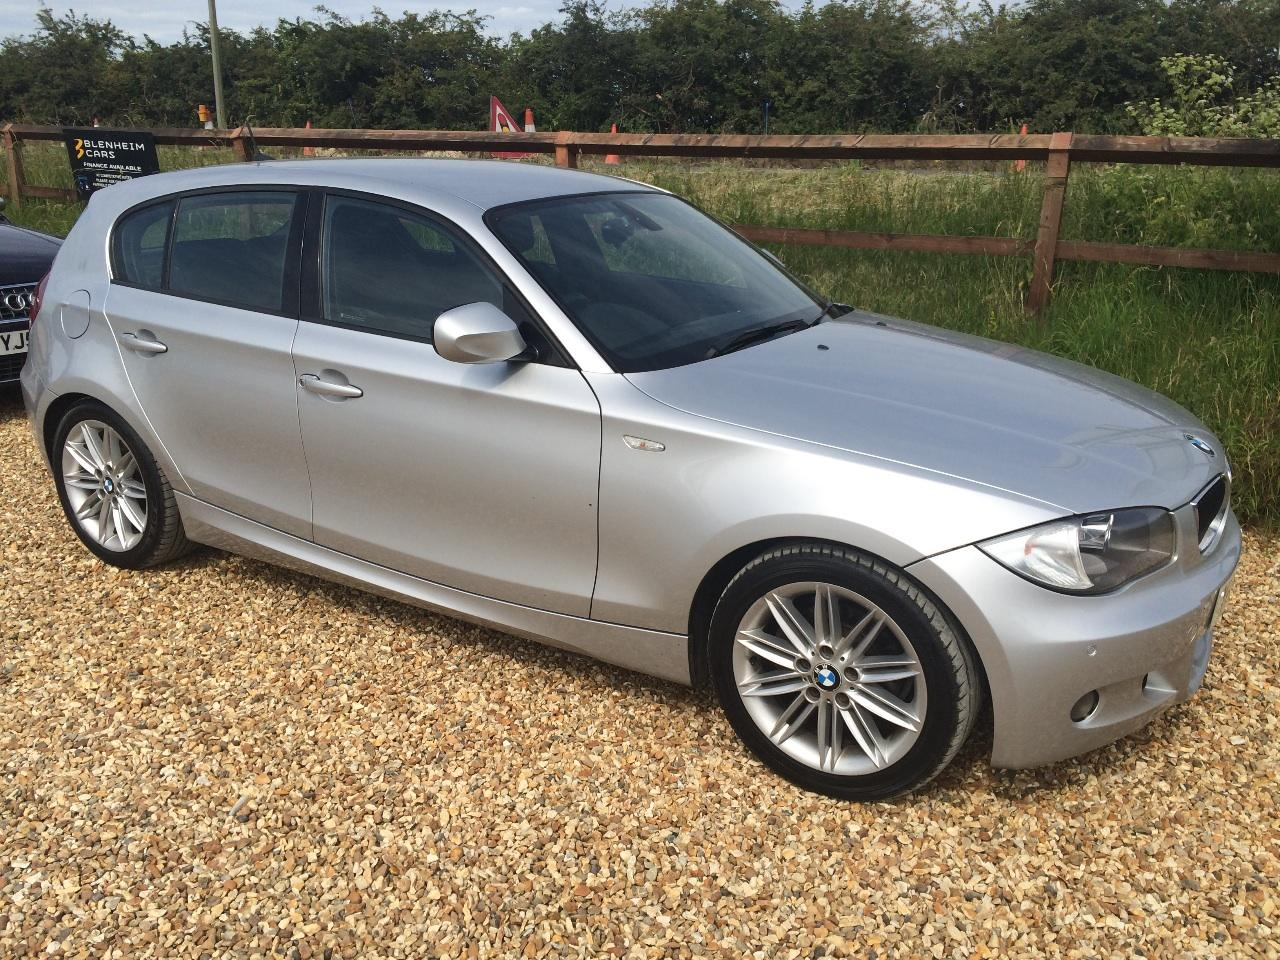 BMW 1 Series 2.0 118d M SPORT 5DR FULL SERVICE HISTORY 2 OWNERS ROAD TAX £30 FOR YEAR Hatchback Diesel Silver